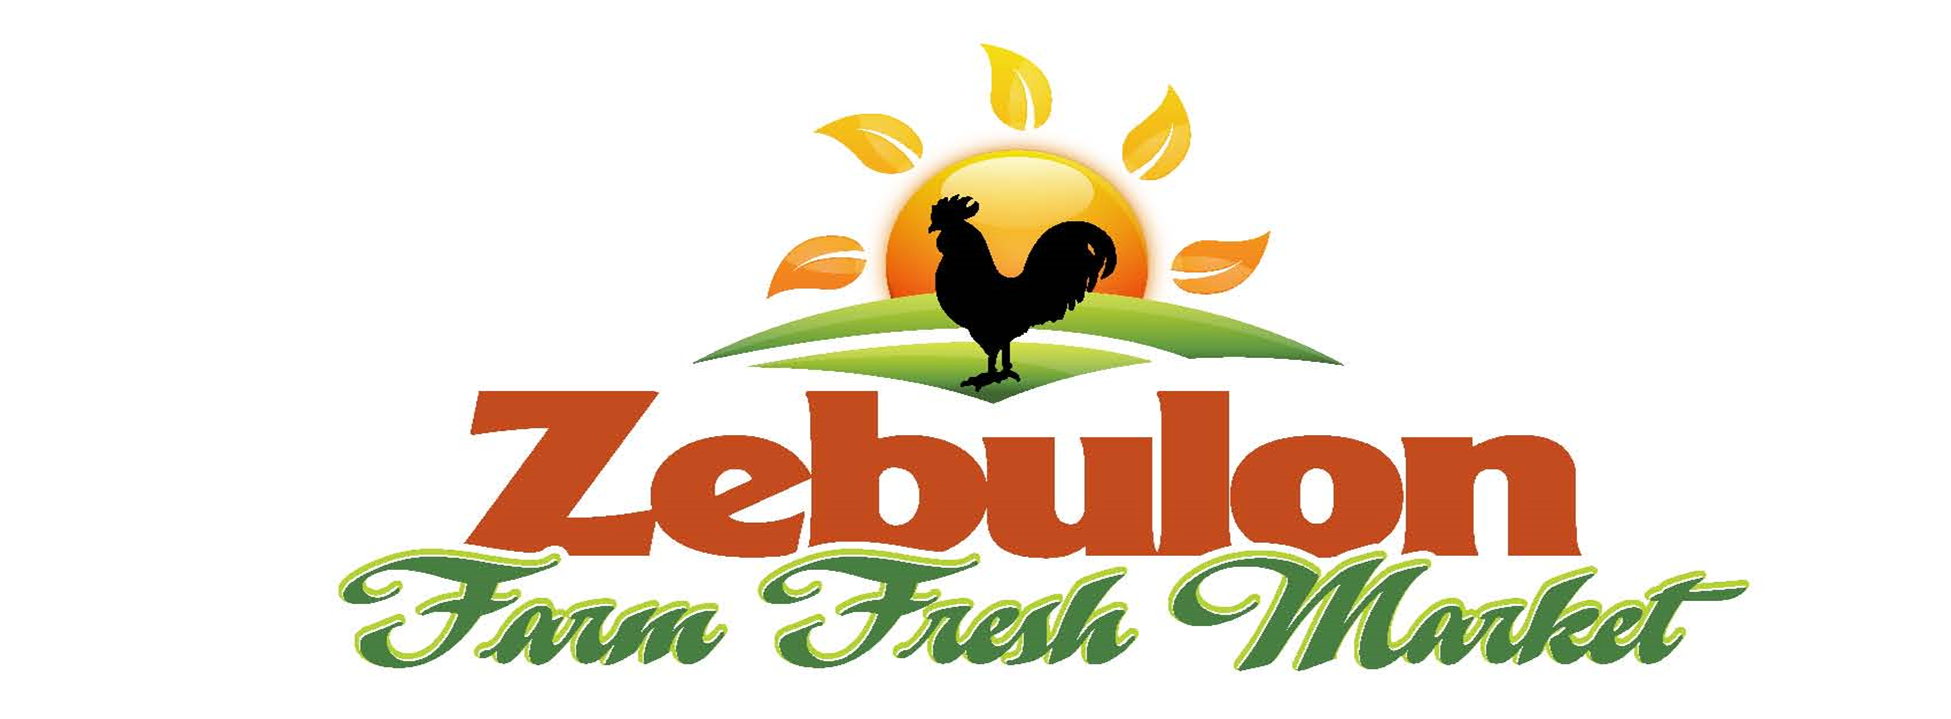 Zebulon Farm Fresh Market Facebook